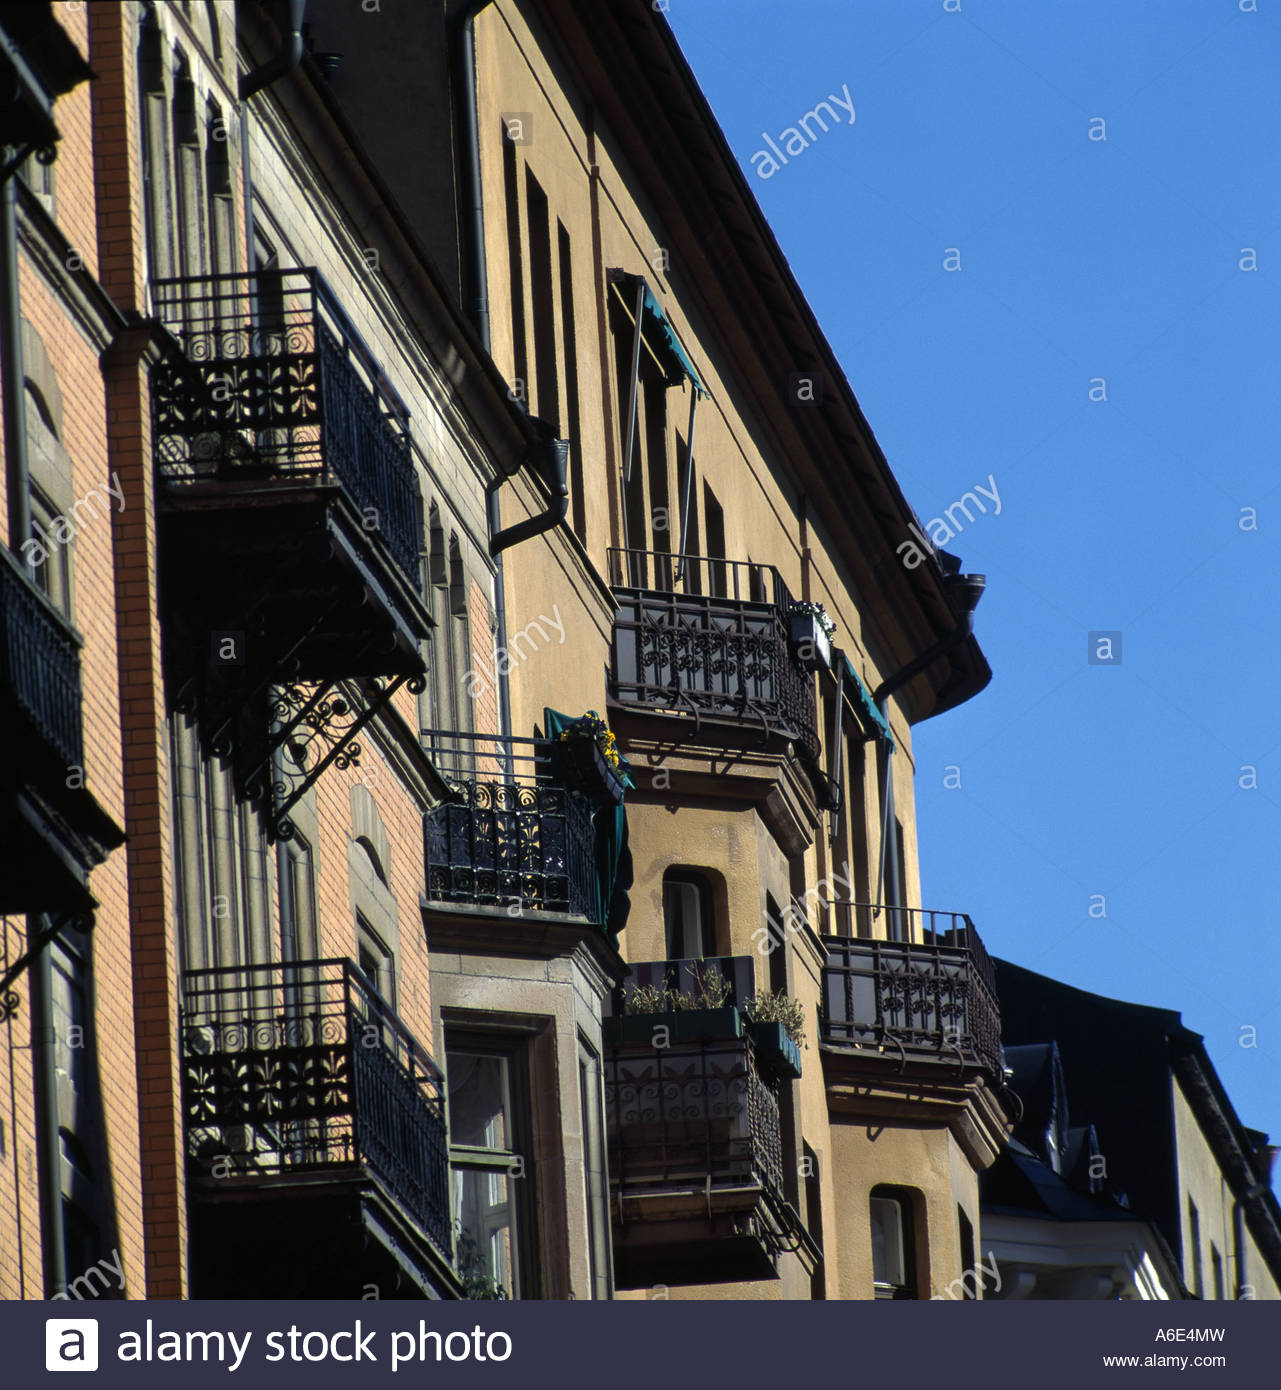 Architecture buildings with balconies - Stock Image